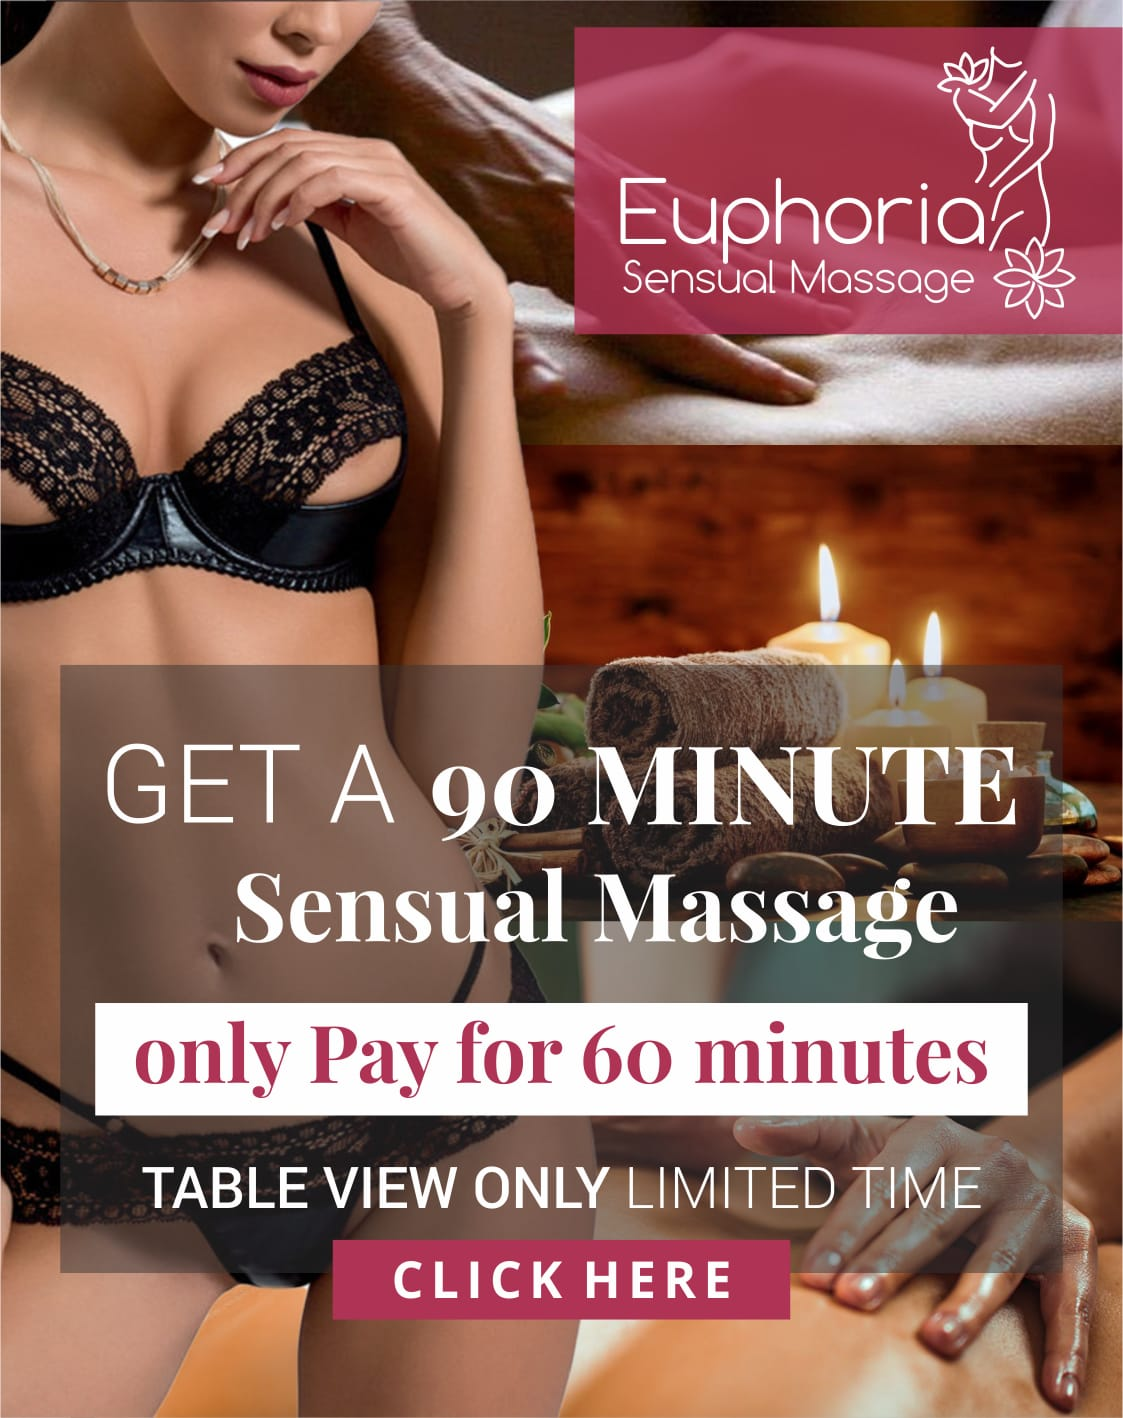 https://www.euphoria-sensual-massage.com/our-masseuse.html